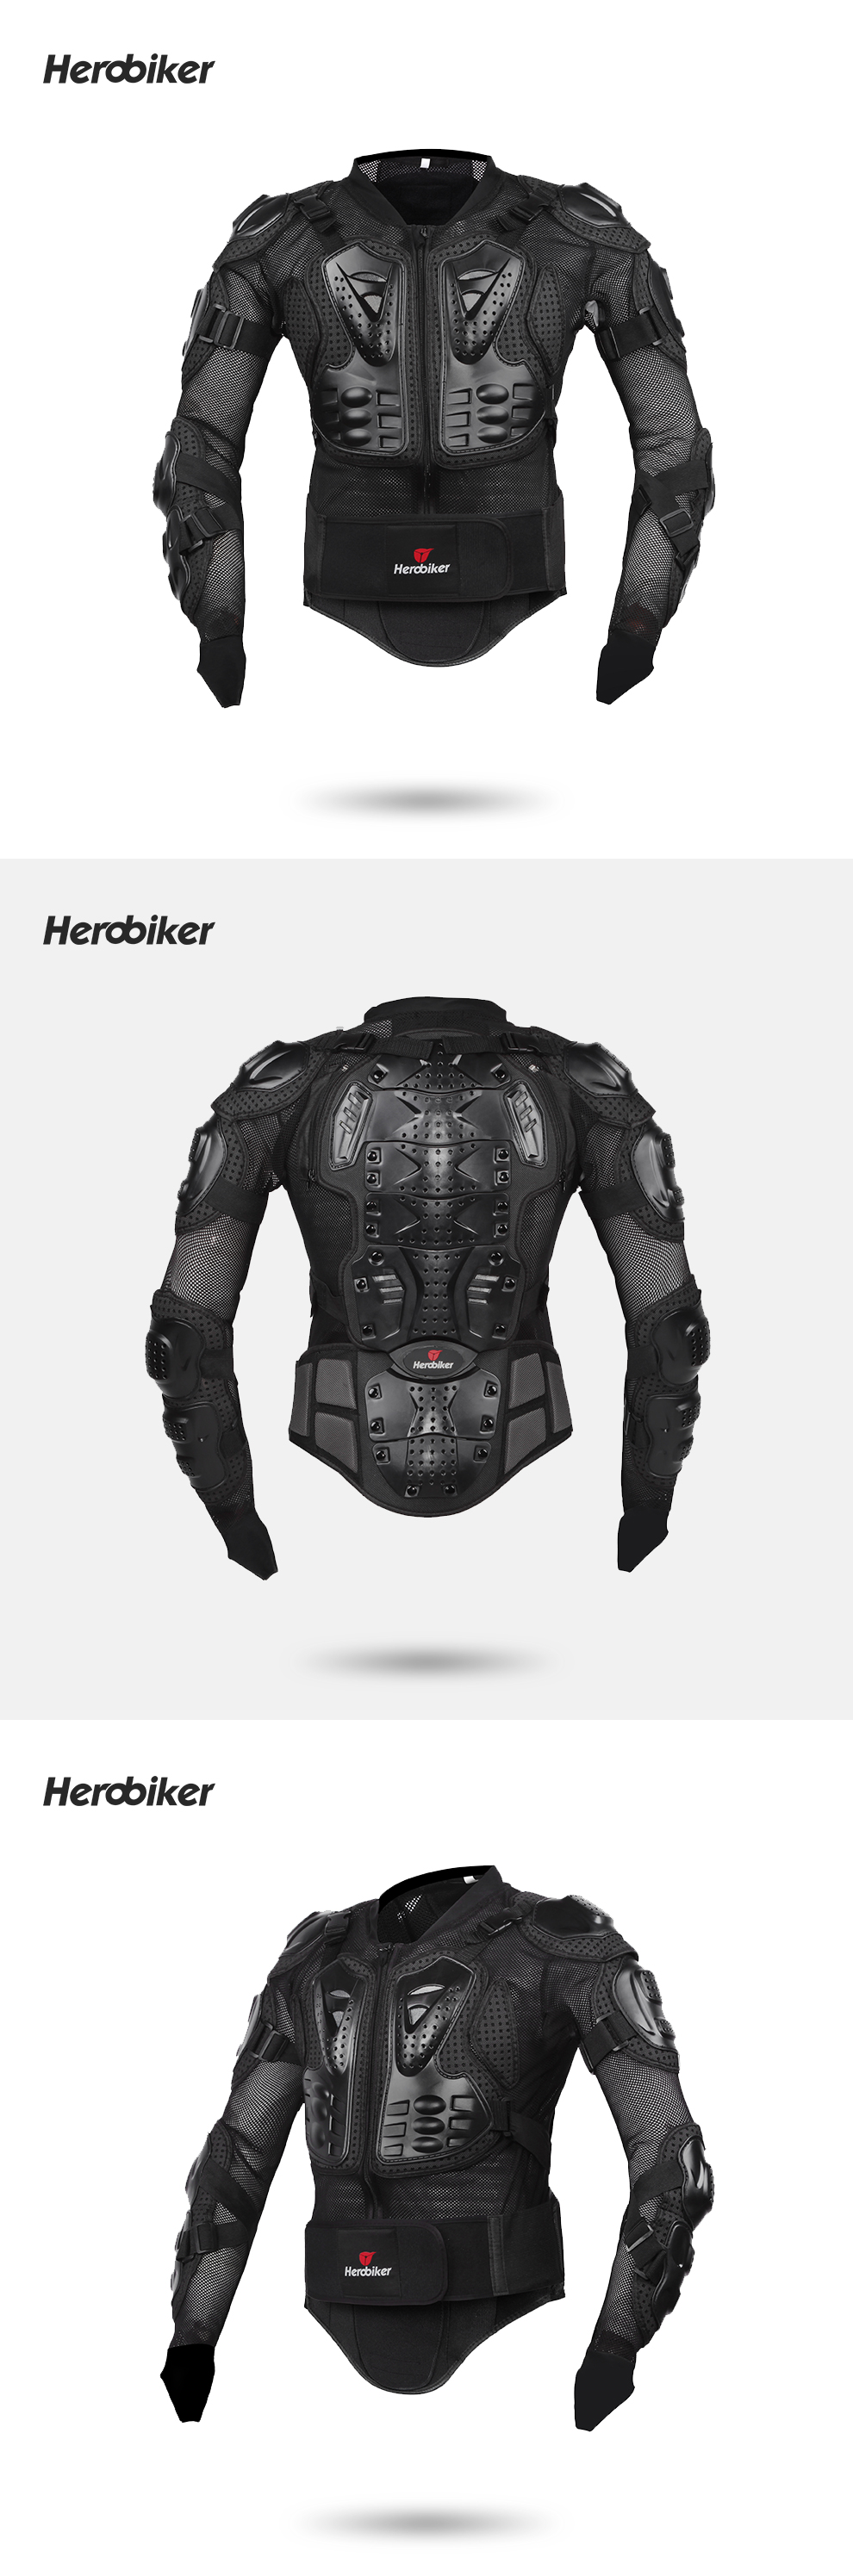 HEROBIKER Motorcycle Jacket Protective Gear Motocross Gear Armor Body Chest Motor Rider Racing Jacket Motorcycle Protection 11